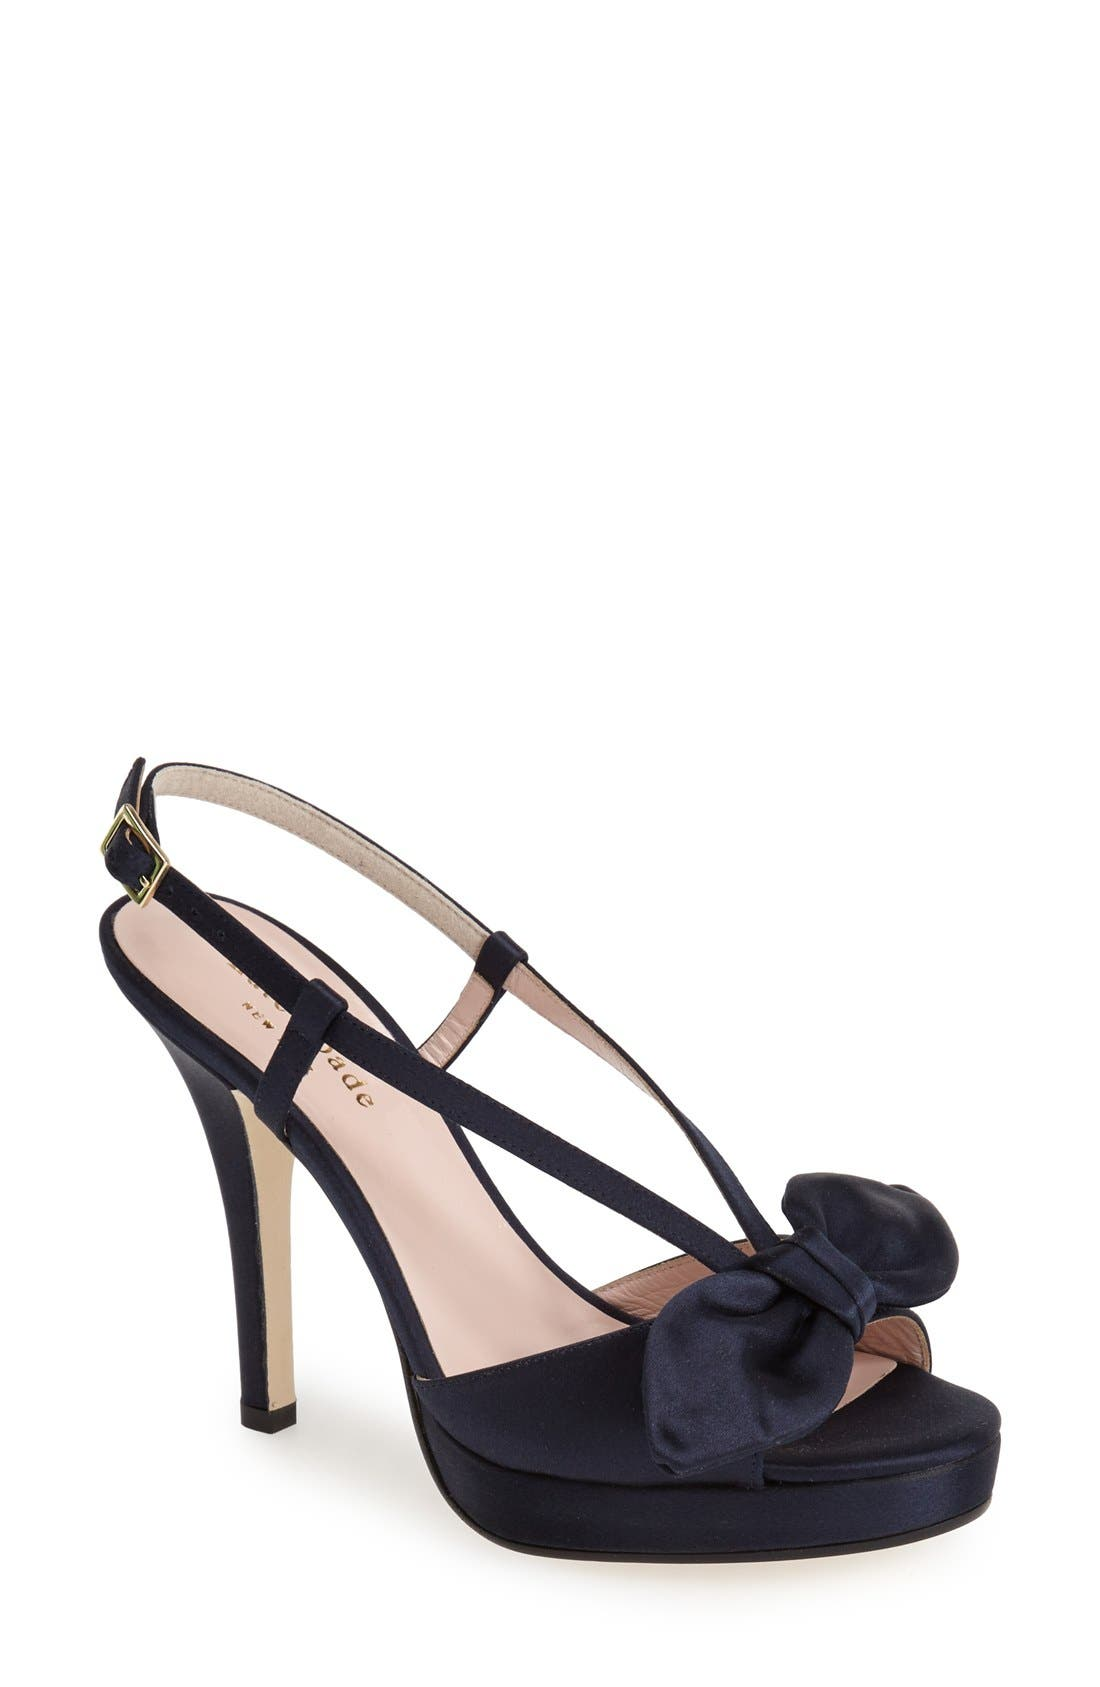 Main Image - kate spade new york 'rezza' platform sandal (Women)